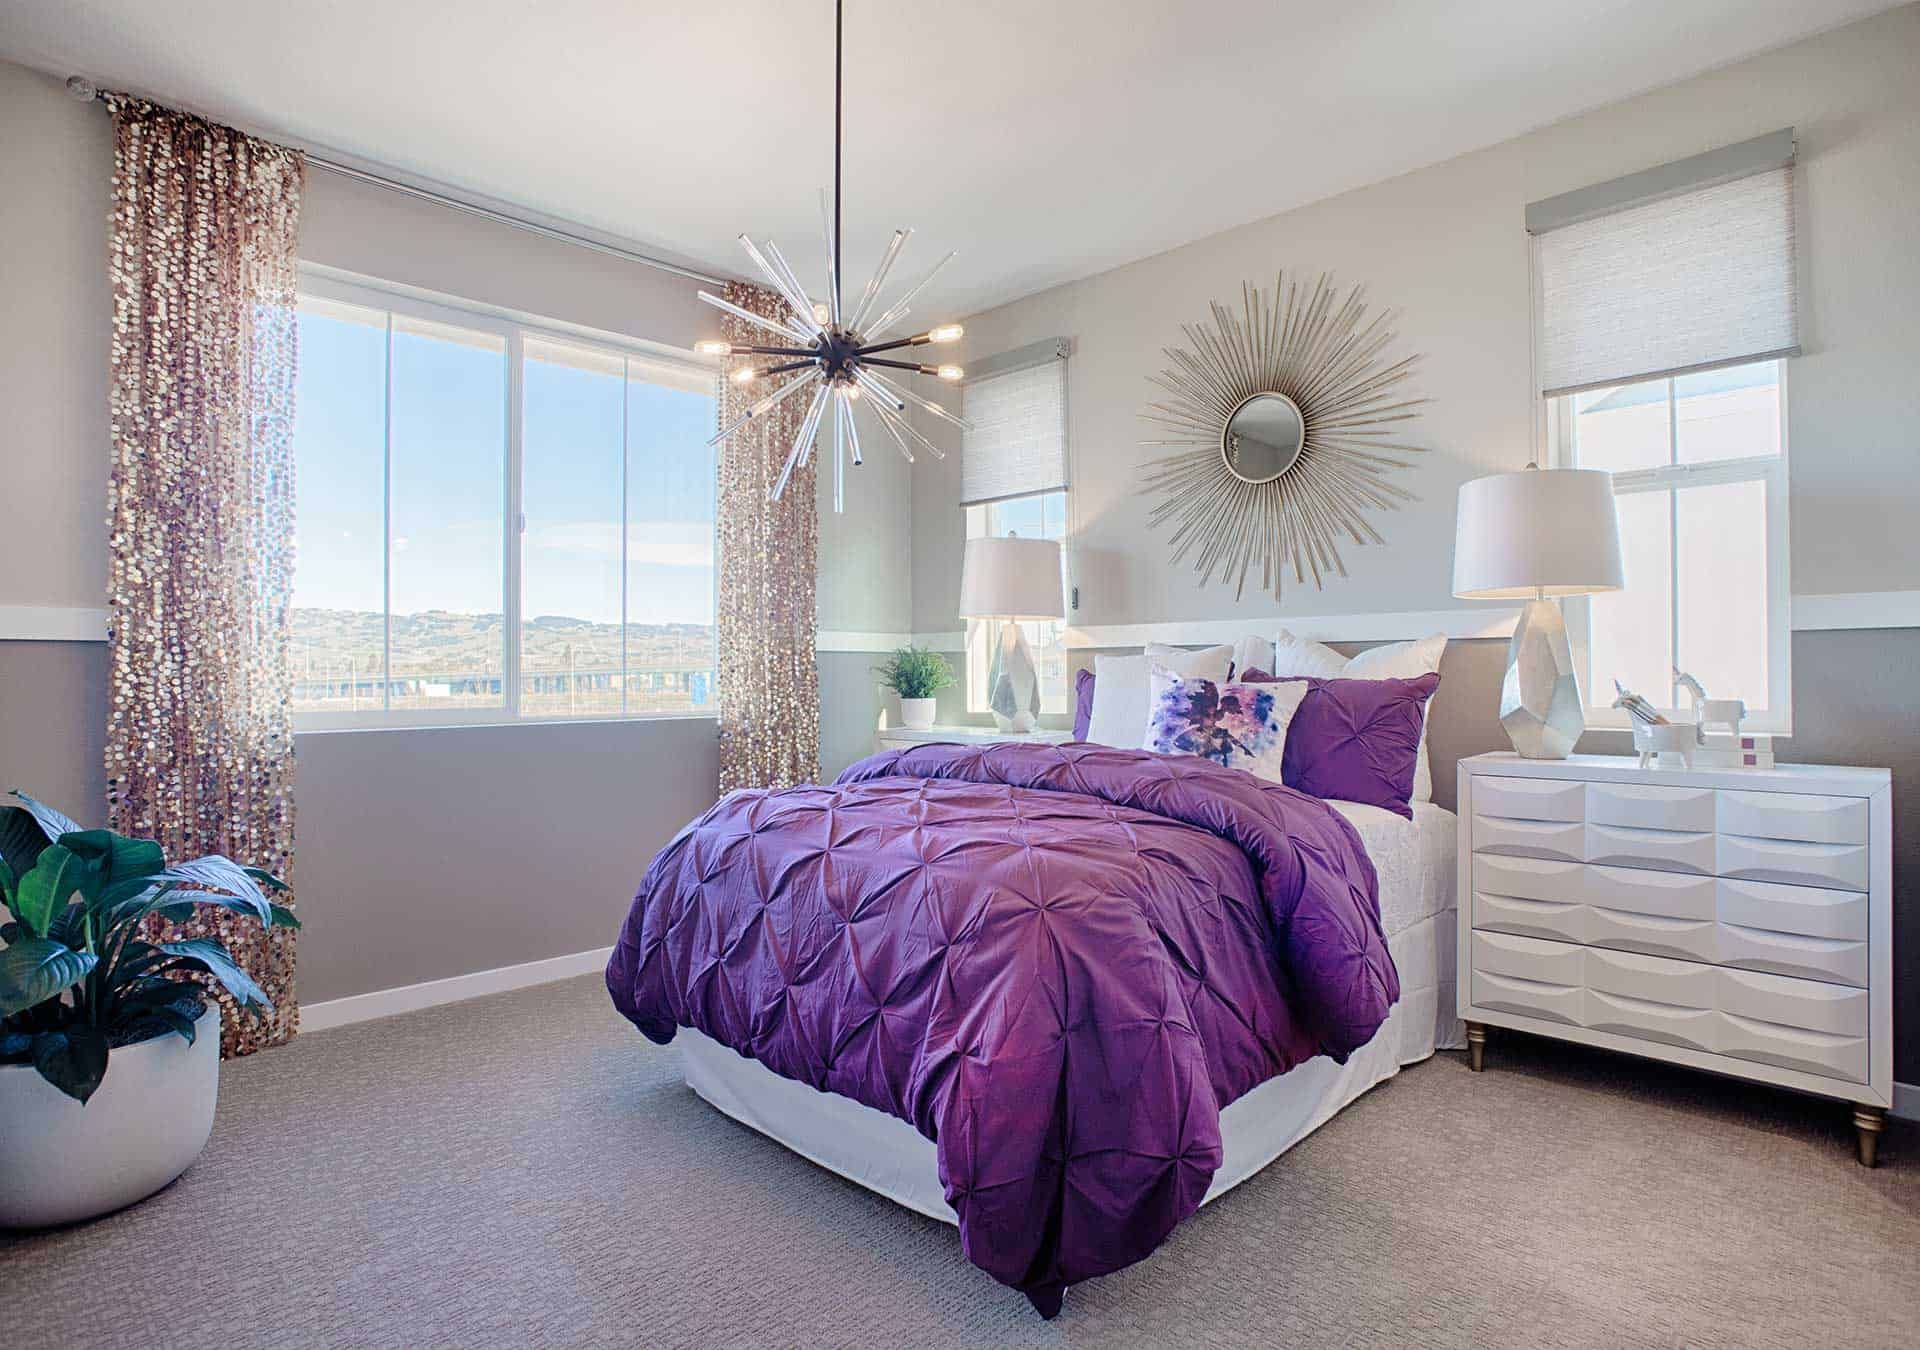 Bedroom featured in the Plan 3 By Tri Pointe Homes in Santa Rosa, CA